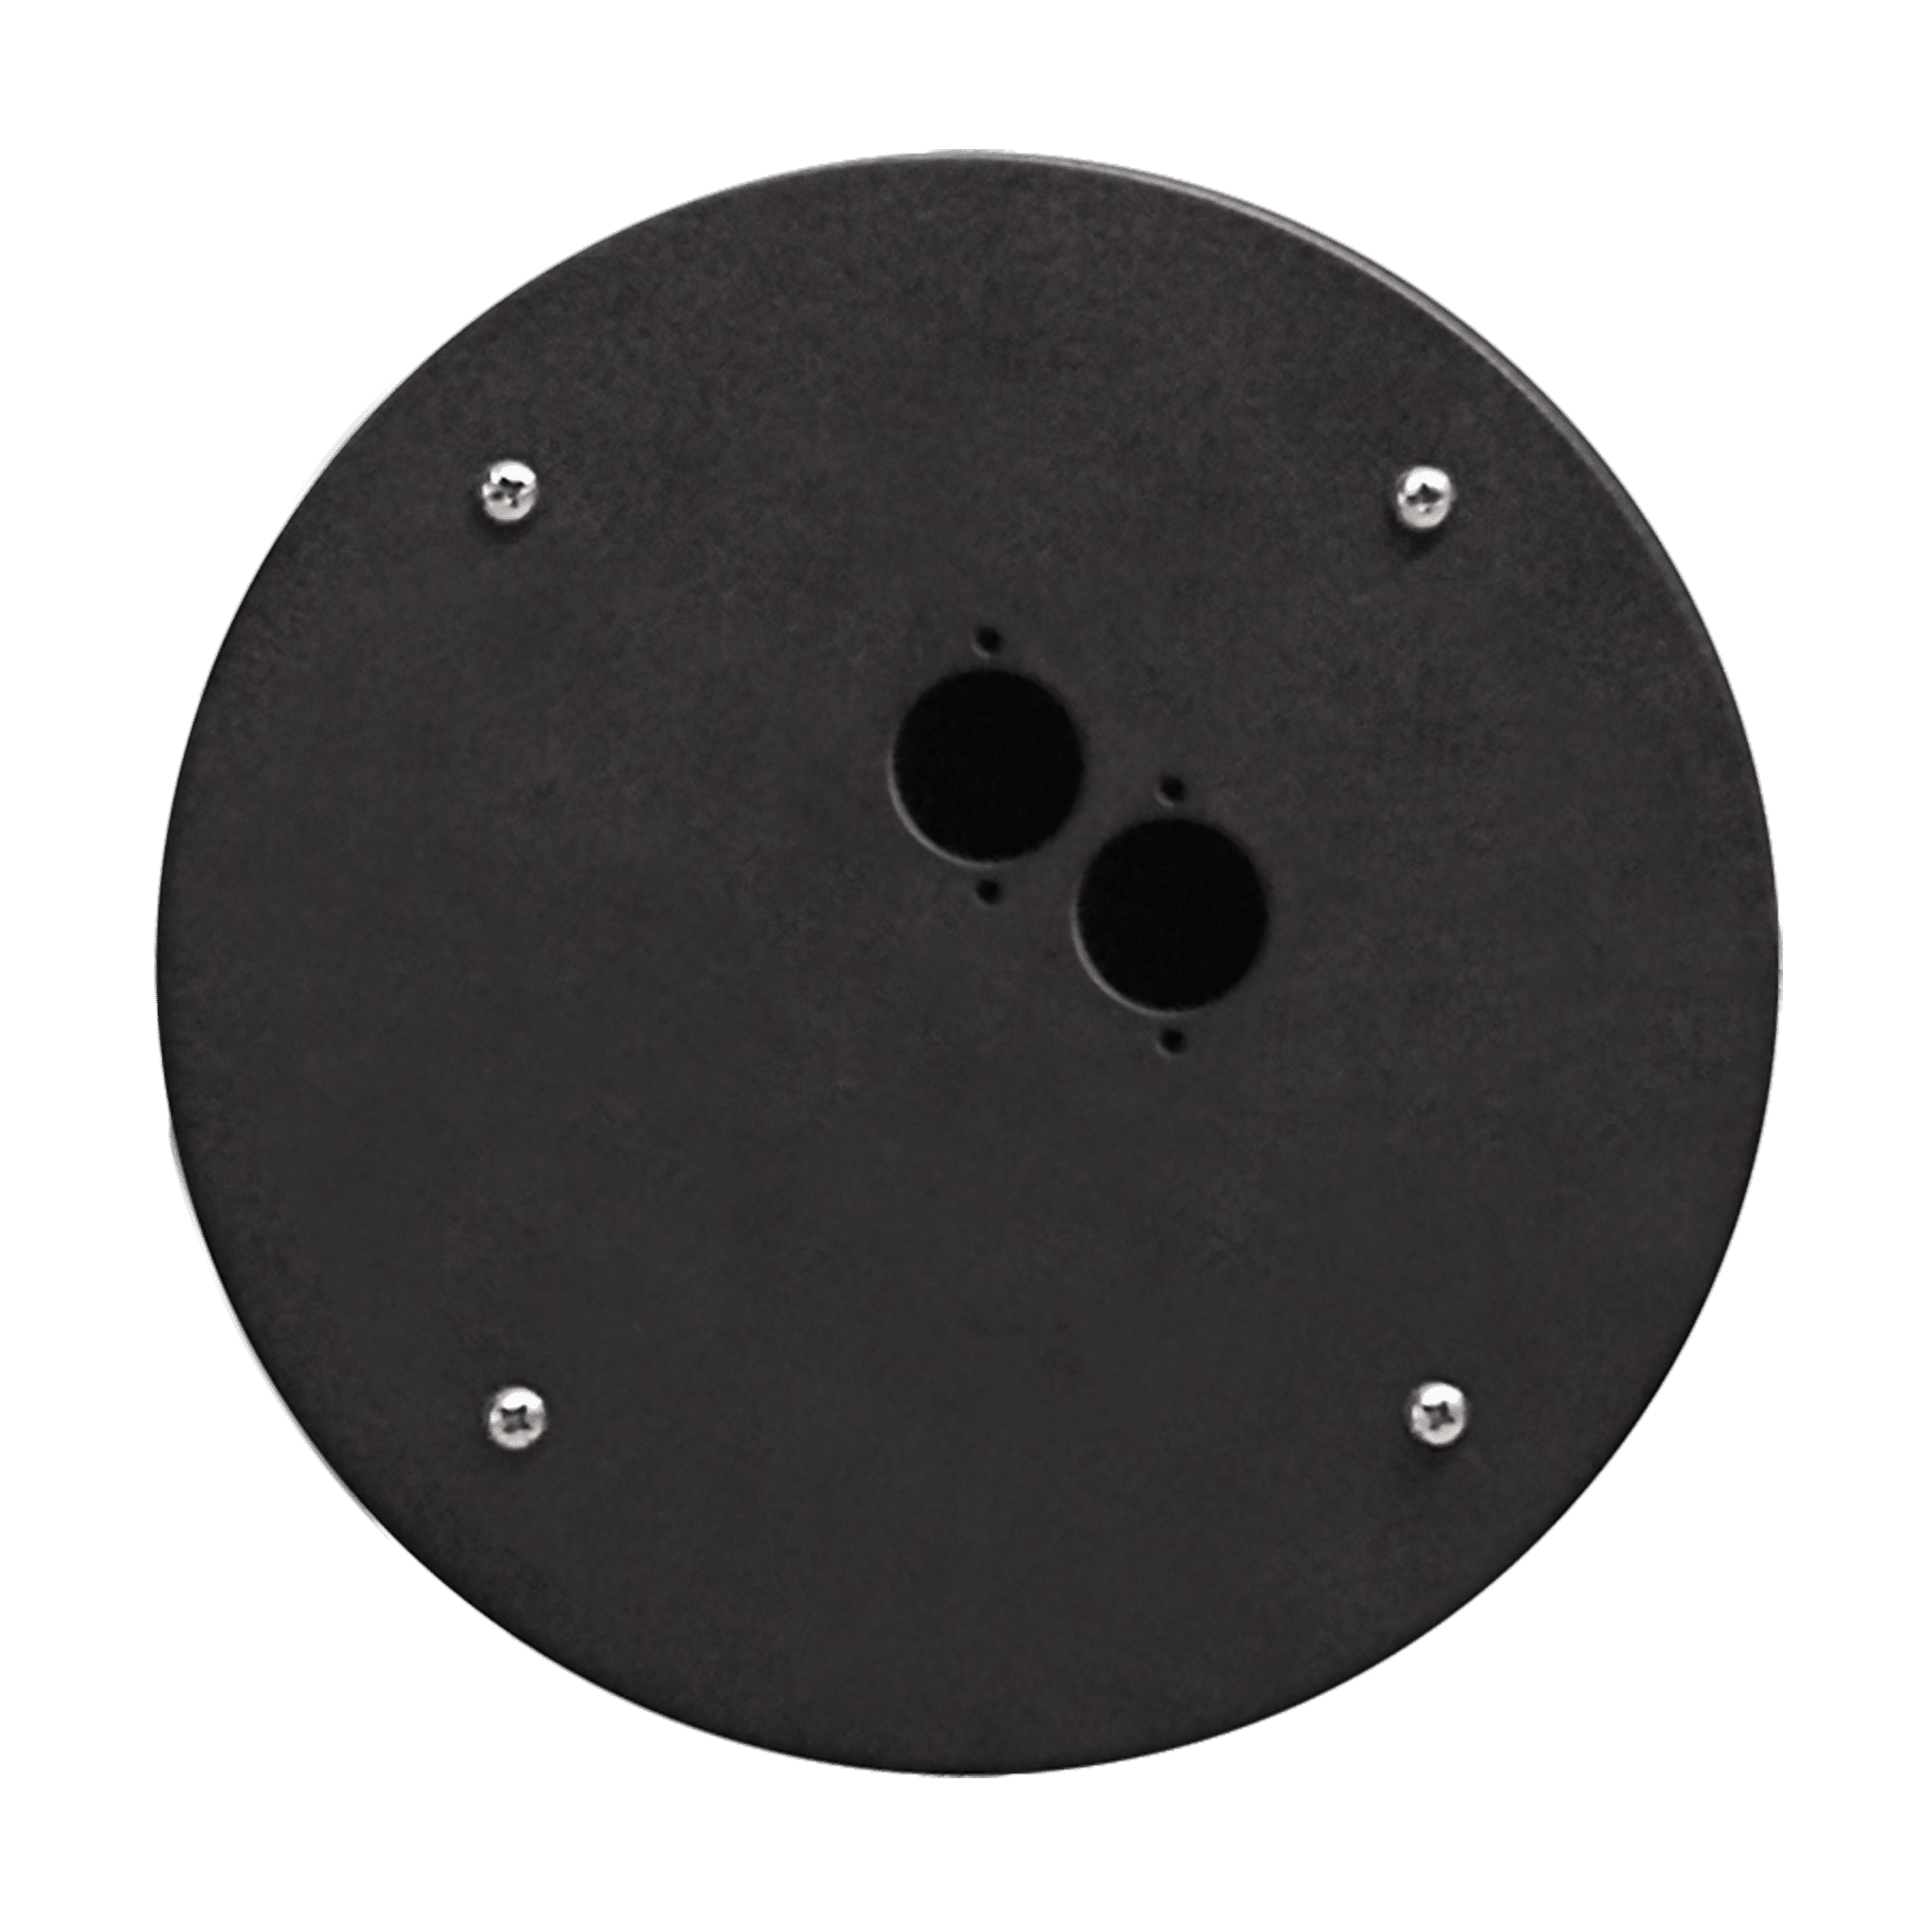 CRP302 - 2 d-size hole plate